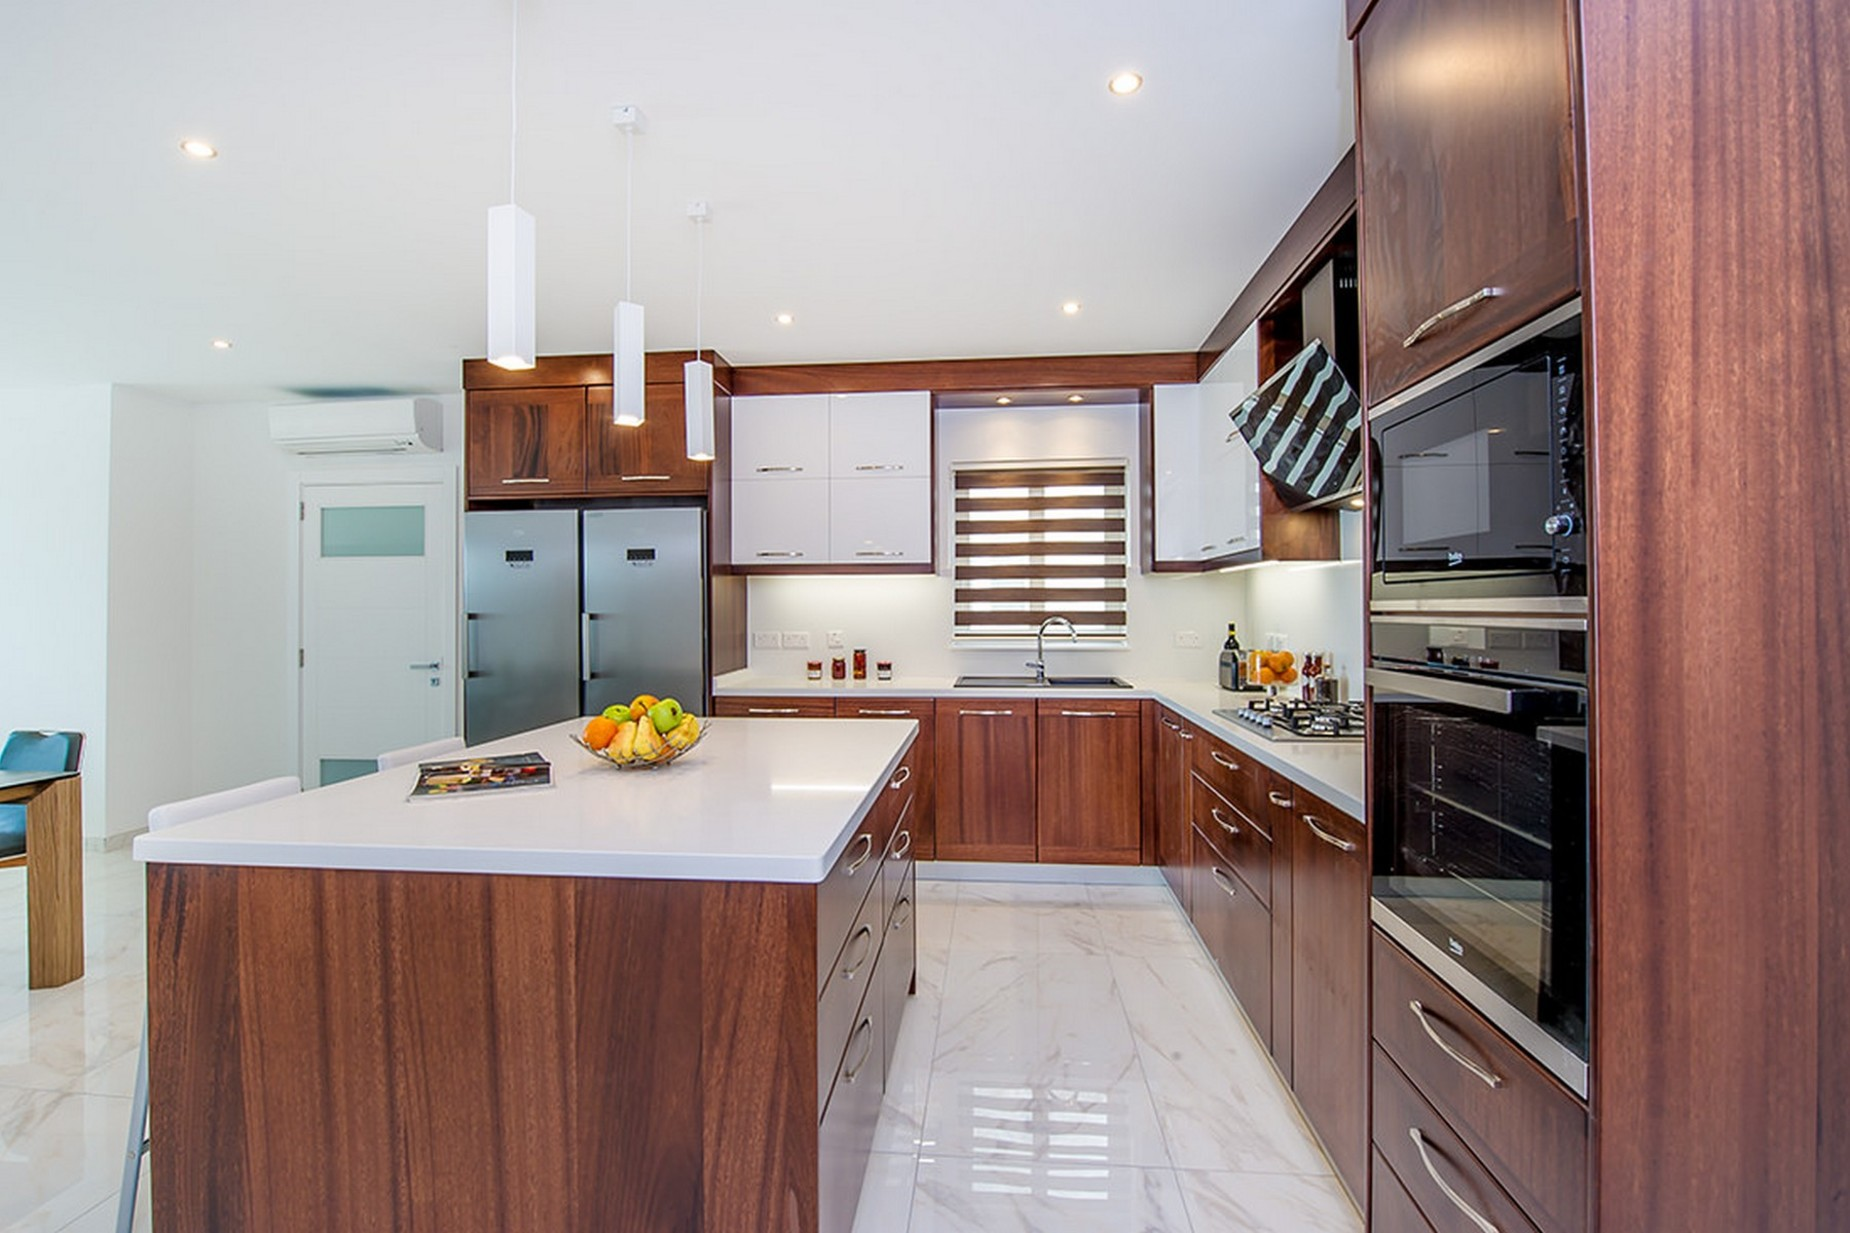 3 bed Apartment For Rent in Mellieha, Mellieha - thumb 5